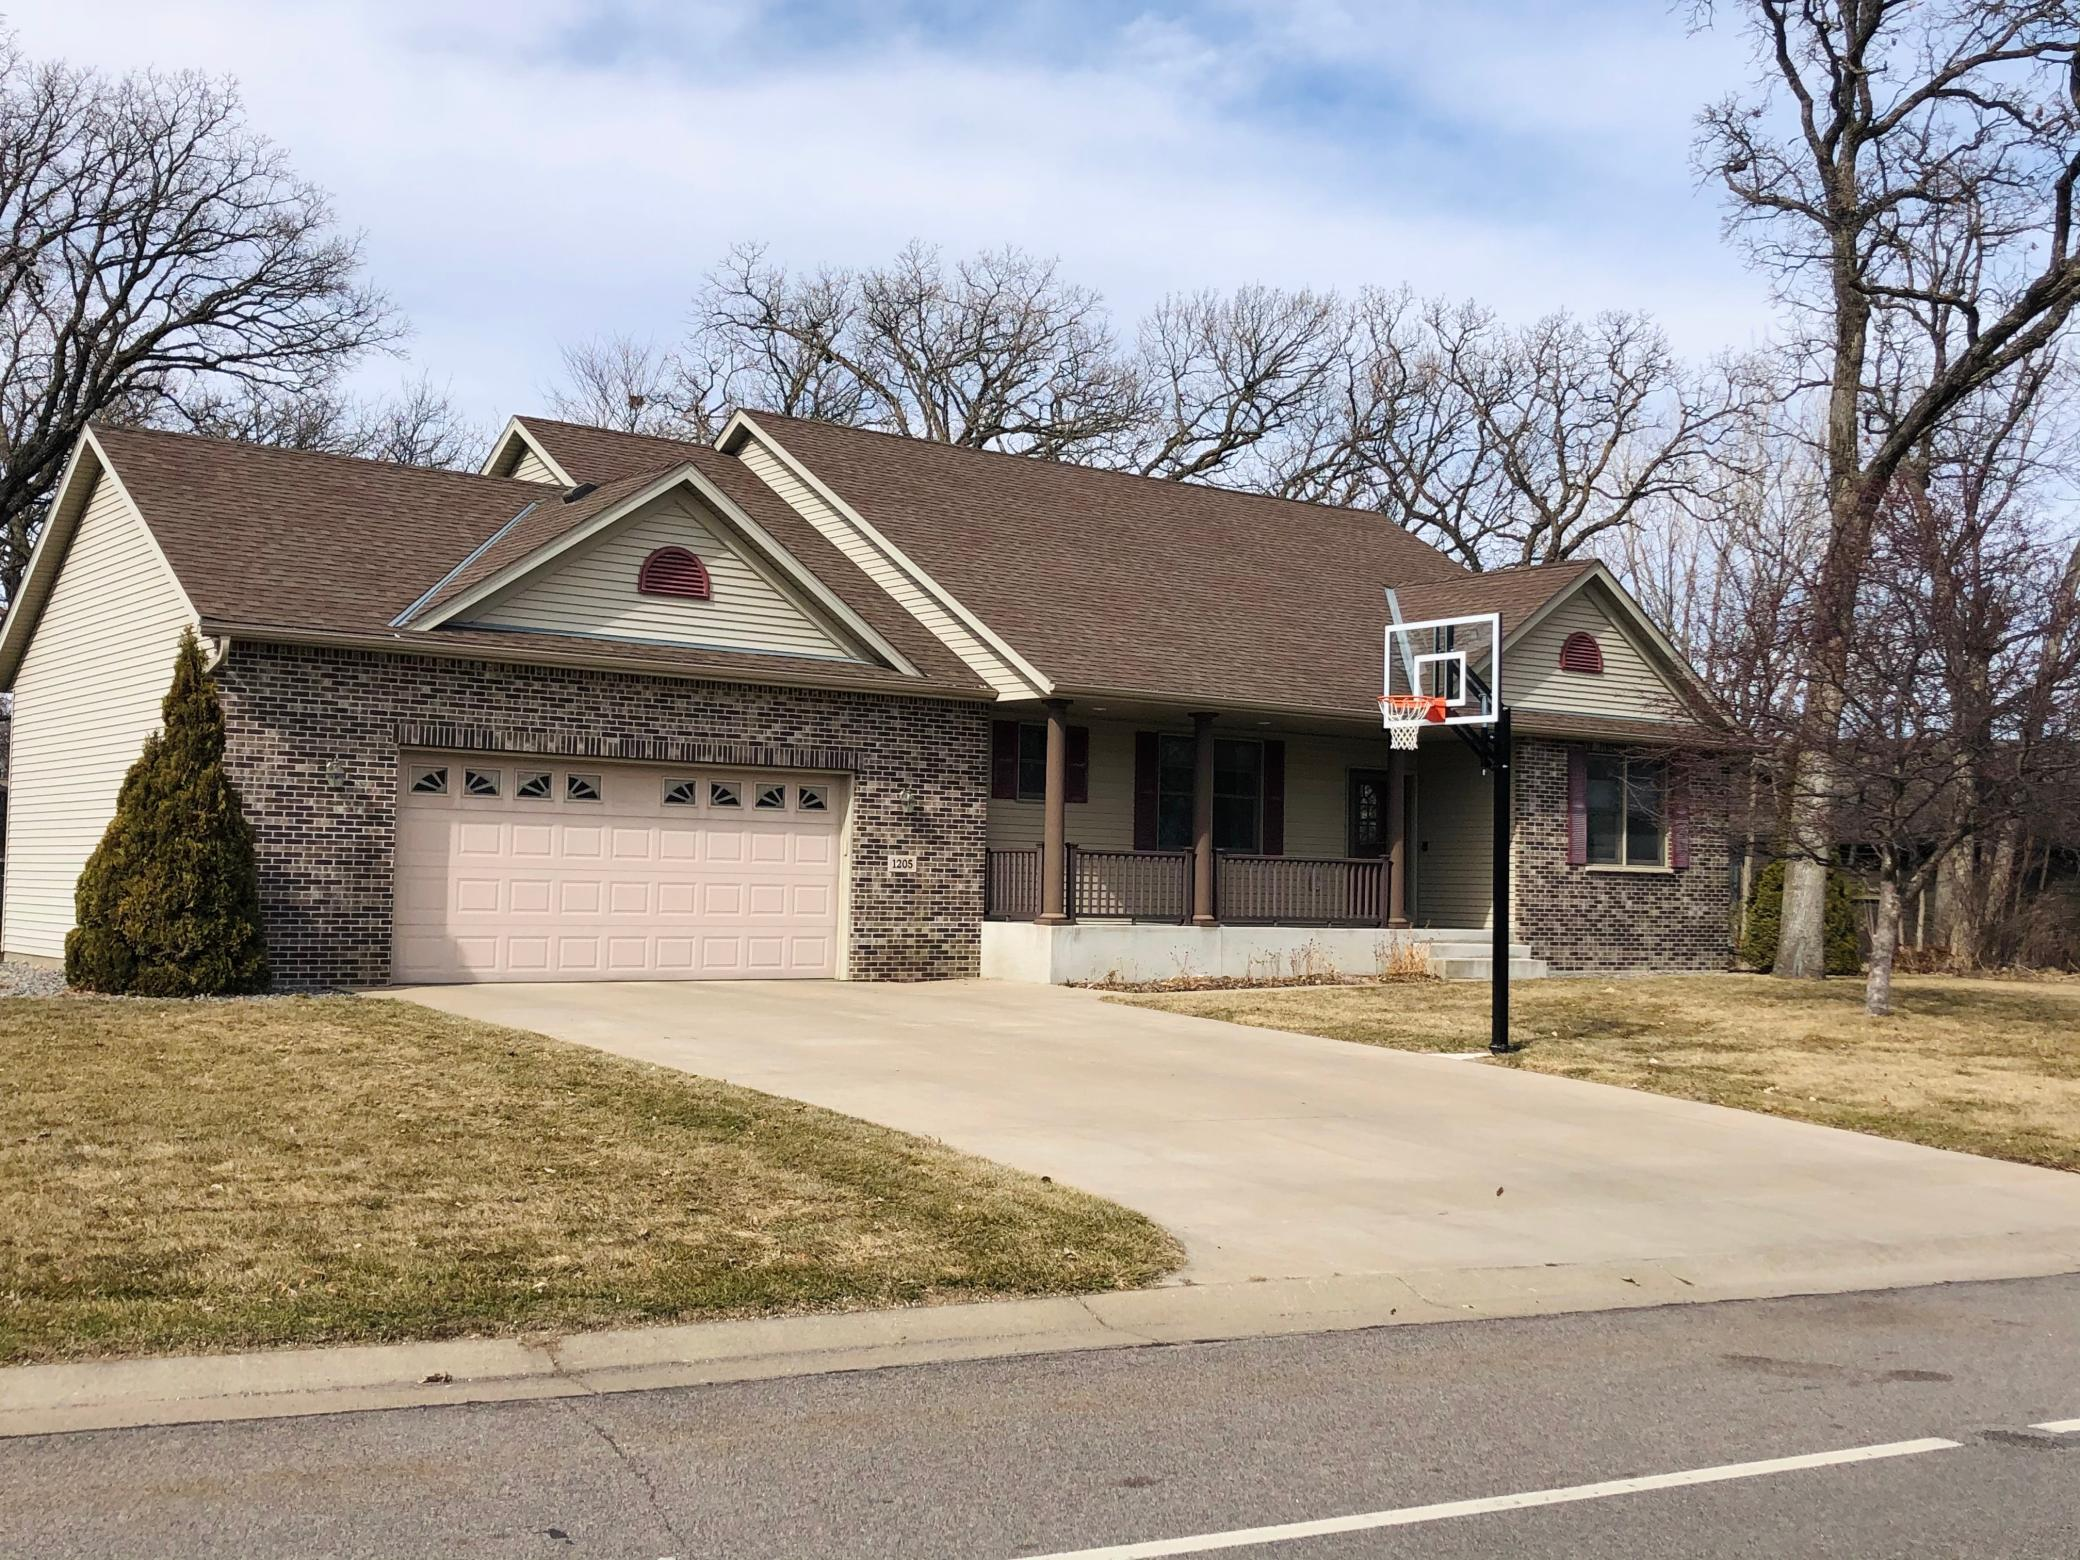 1205 Main Street, Clearwater MN 55320 - Photo 2